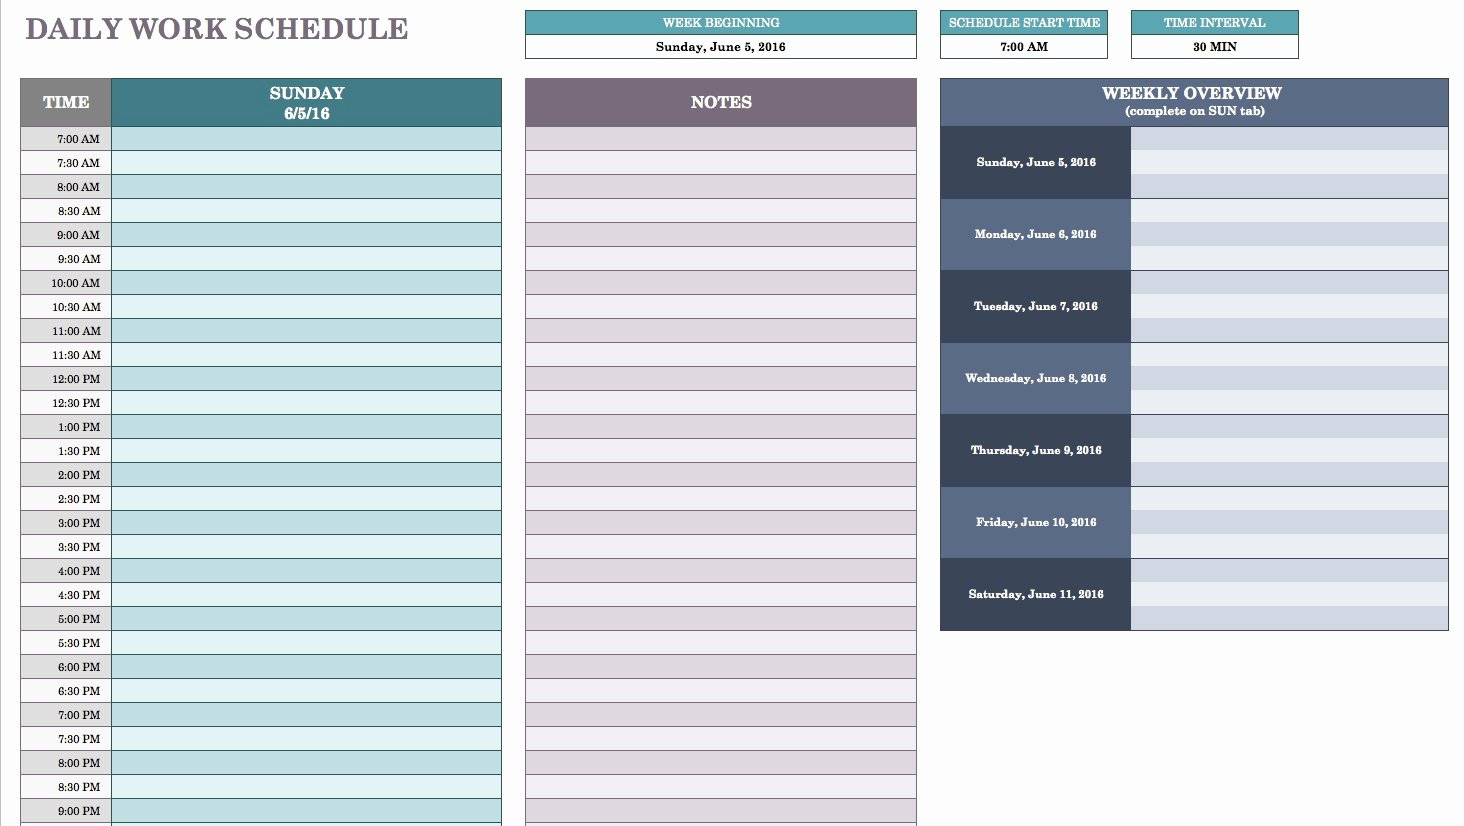 Daily Work Schedule Template Lovely Free Daily Schedule Templates for Excel Smartsheet